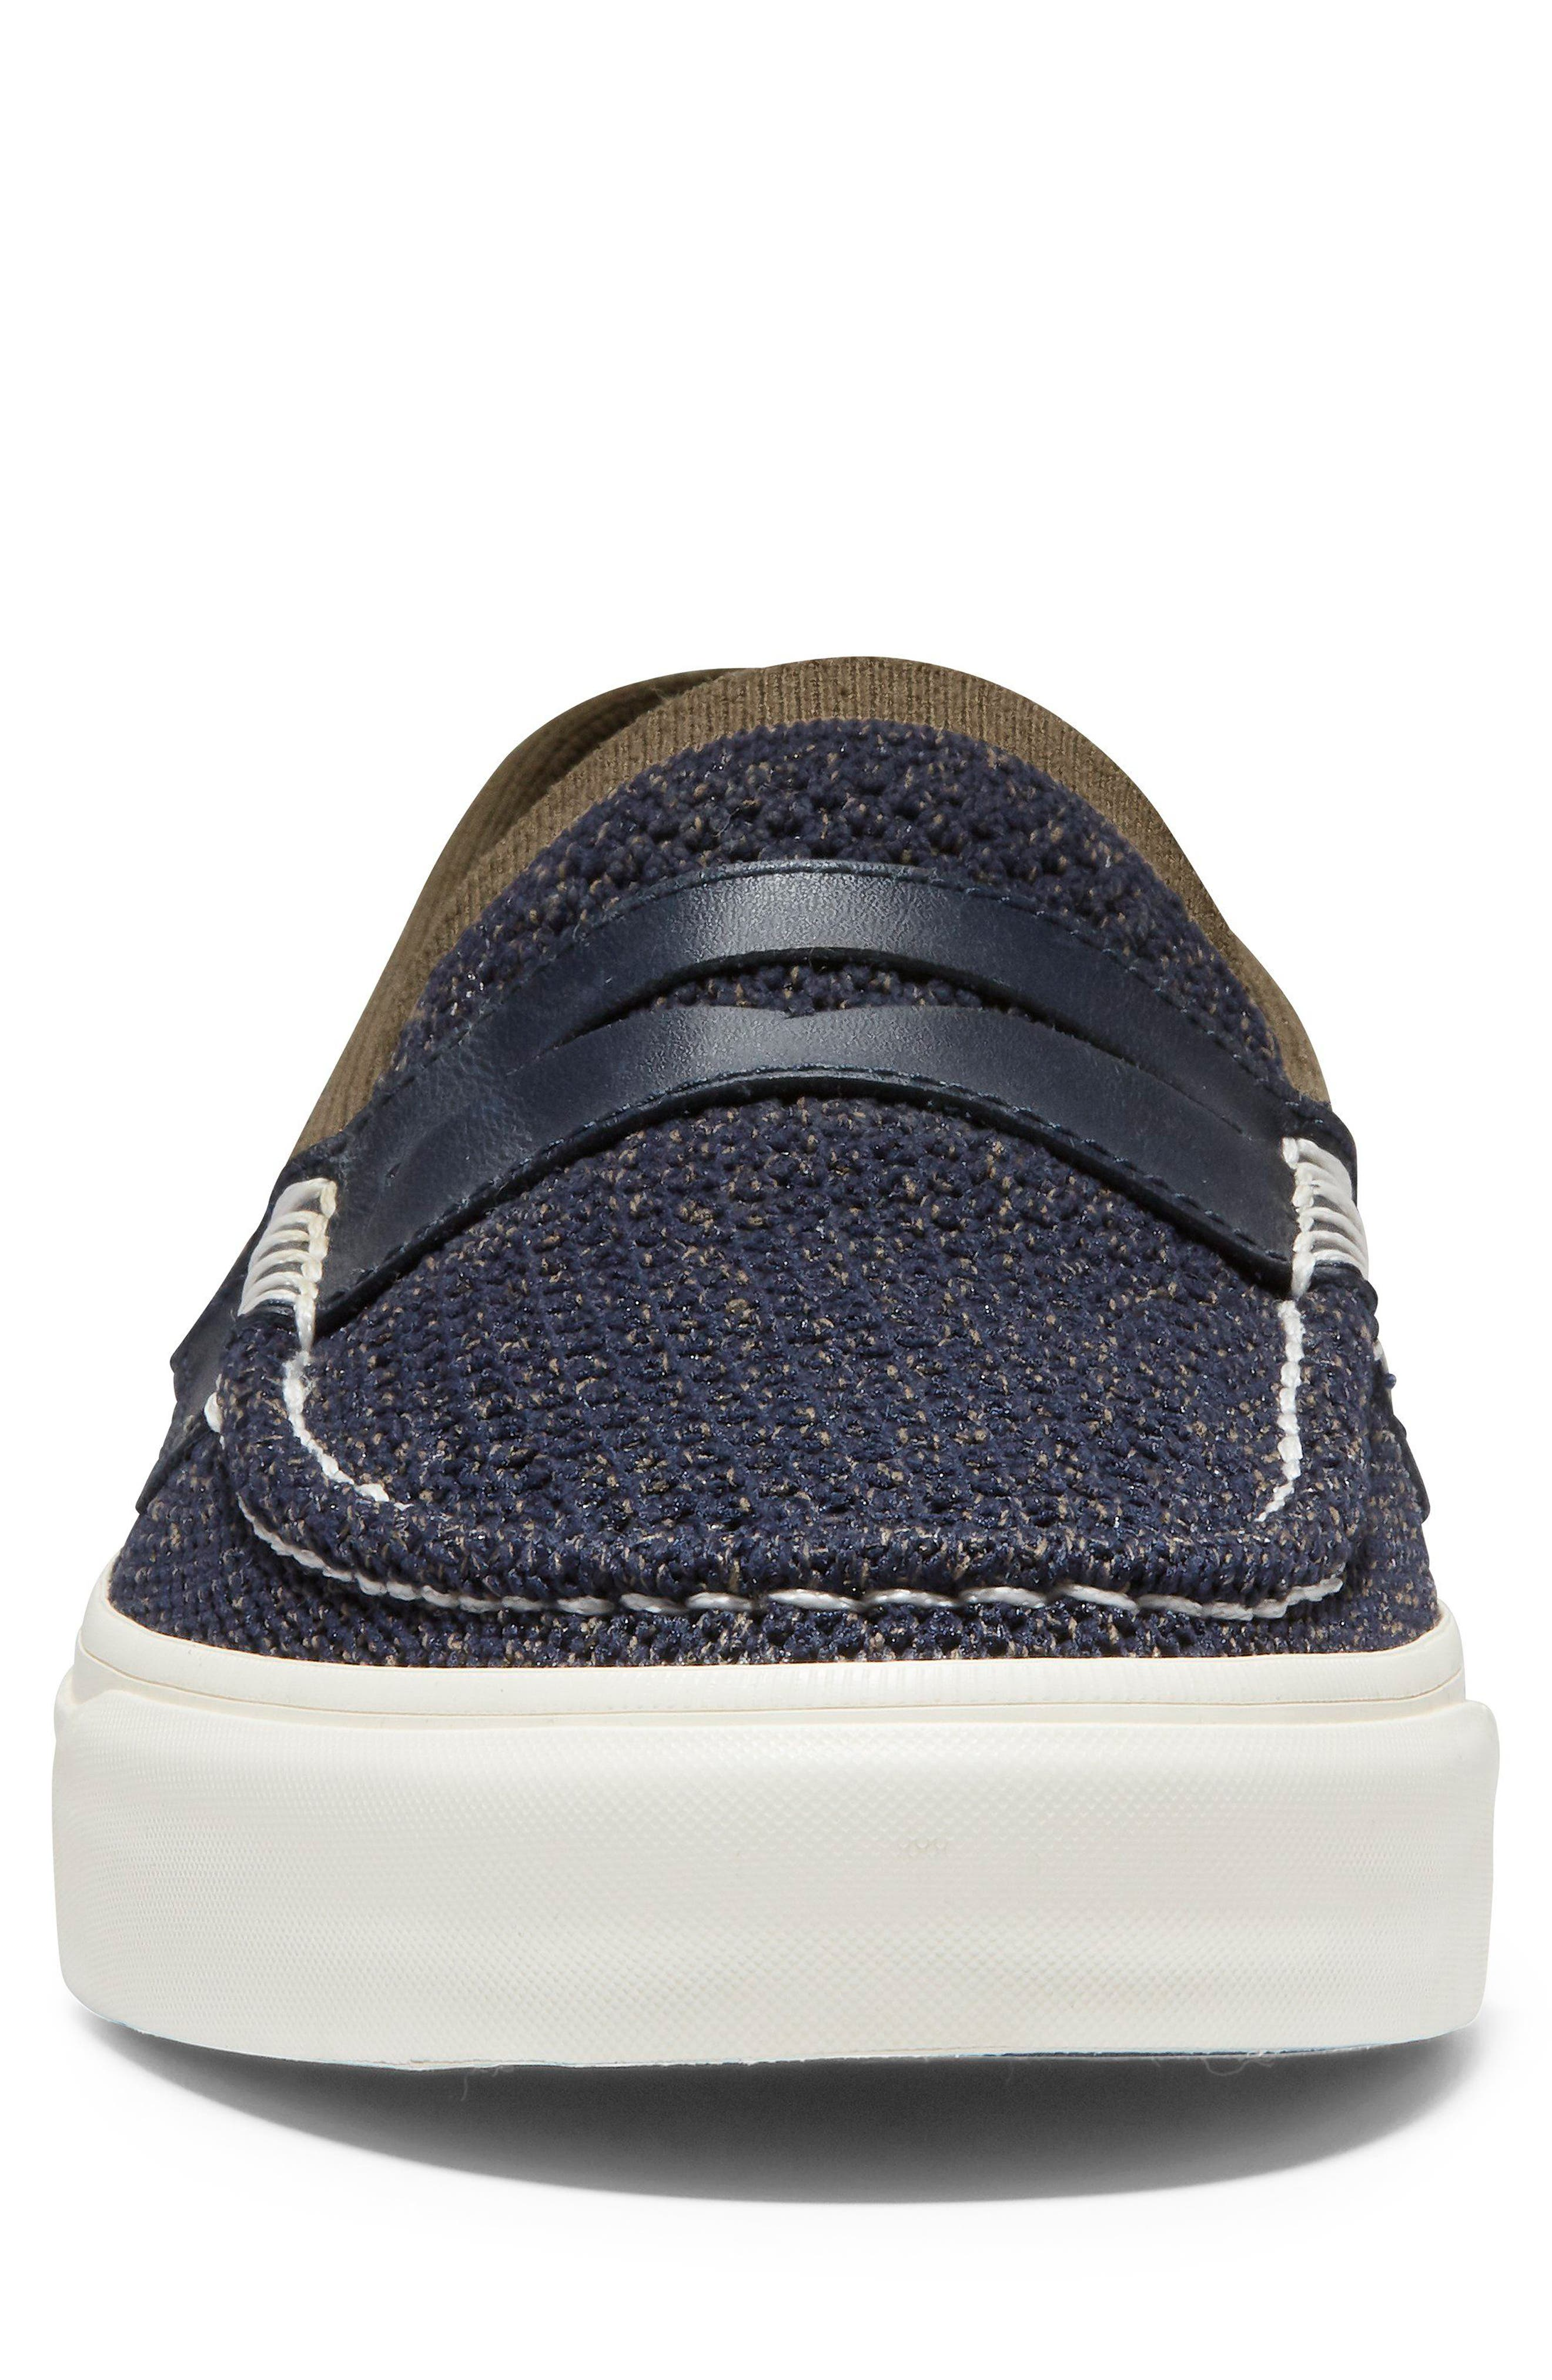 Pinch Stitch LX Stitchlite<sup>™</sup> Penny Loafer,                             Alternate thumbnail 4, color,                             NAVY/ MOREL